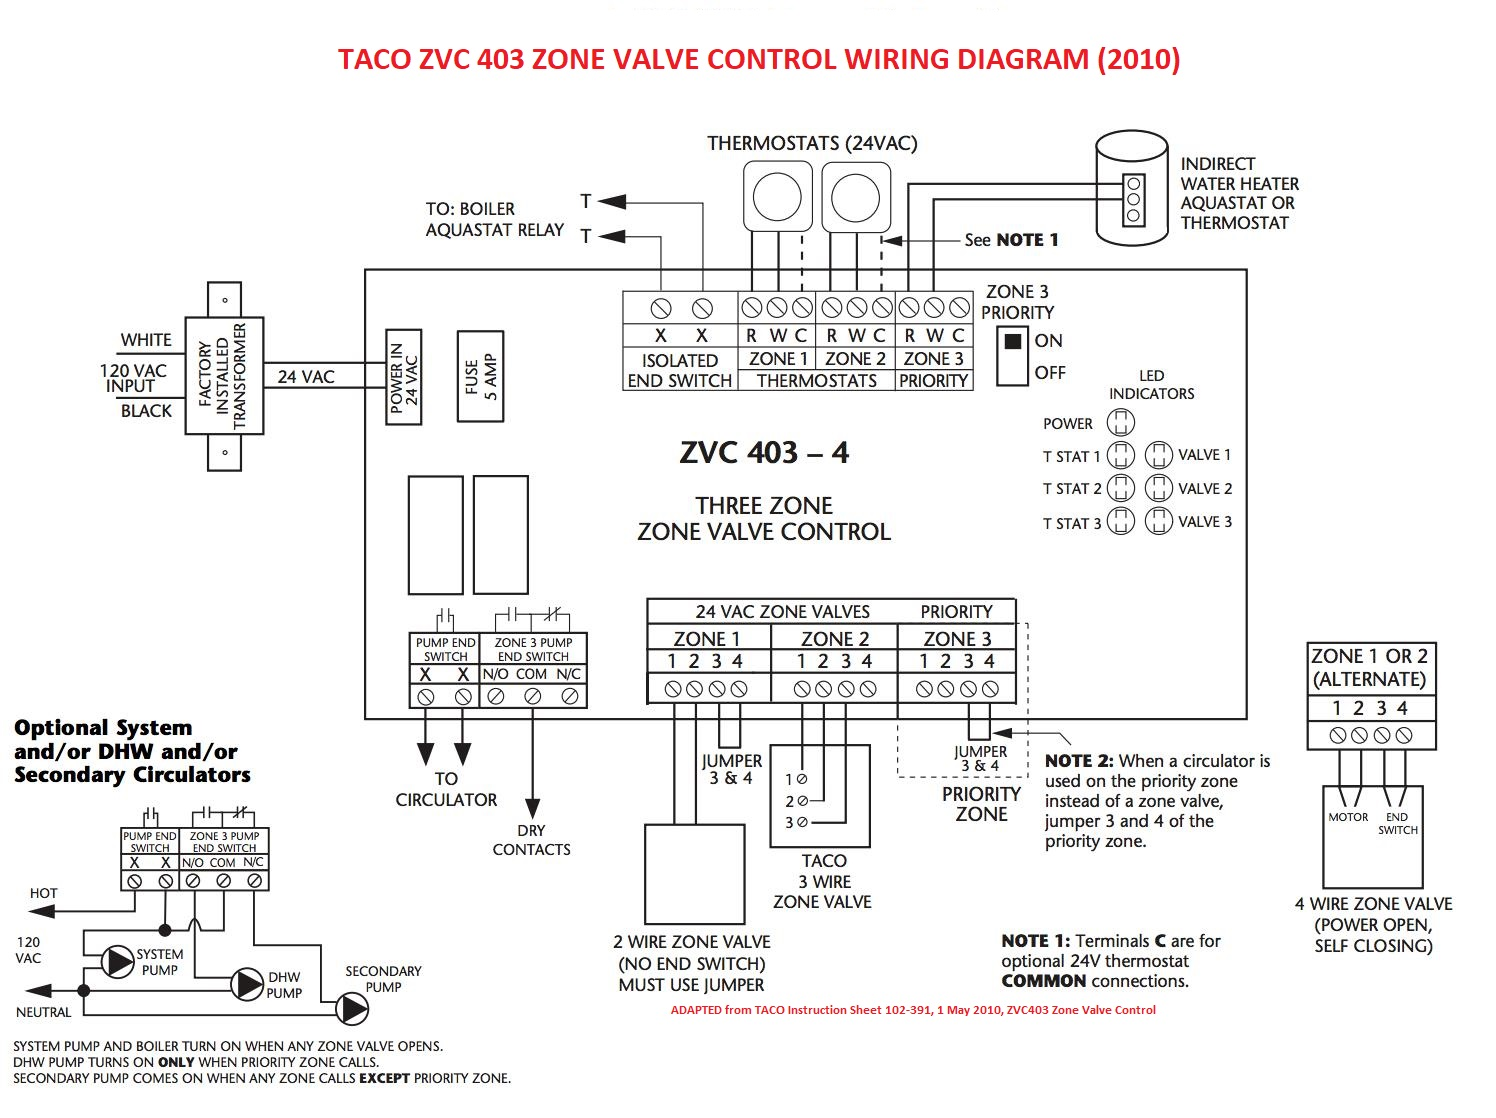 Wiring Diagram Panel Synchron on electricians diagram, grounding diagram, instrumentation diagram, panel wiring icon, drilling diagram, telecommunications diagram, plc diagram, rslogix diagram, troubleshooting diagram, solar panels diagram, installation diagram, assembly diagram,